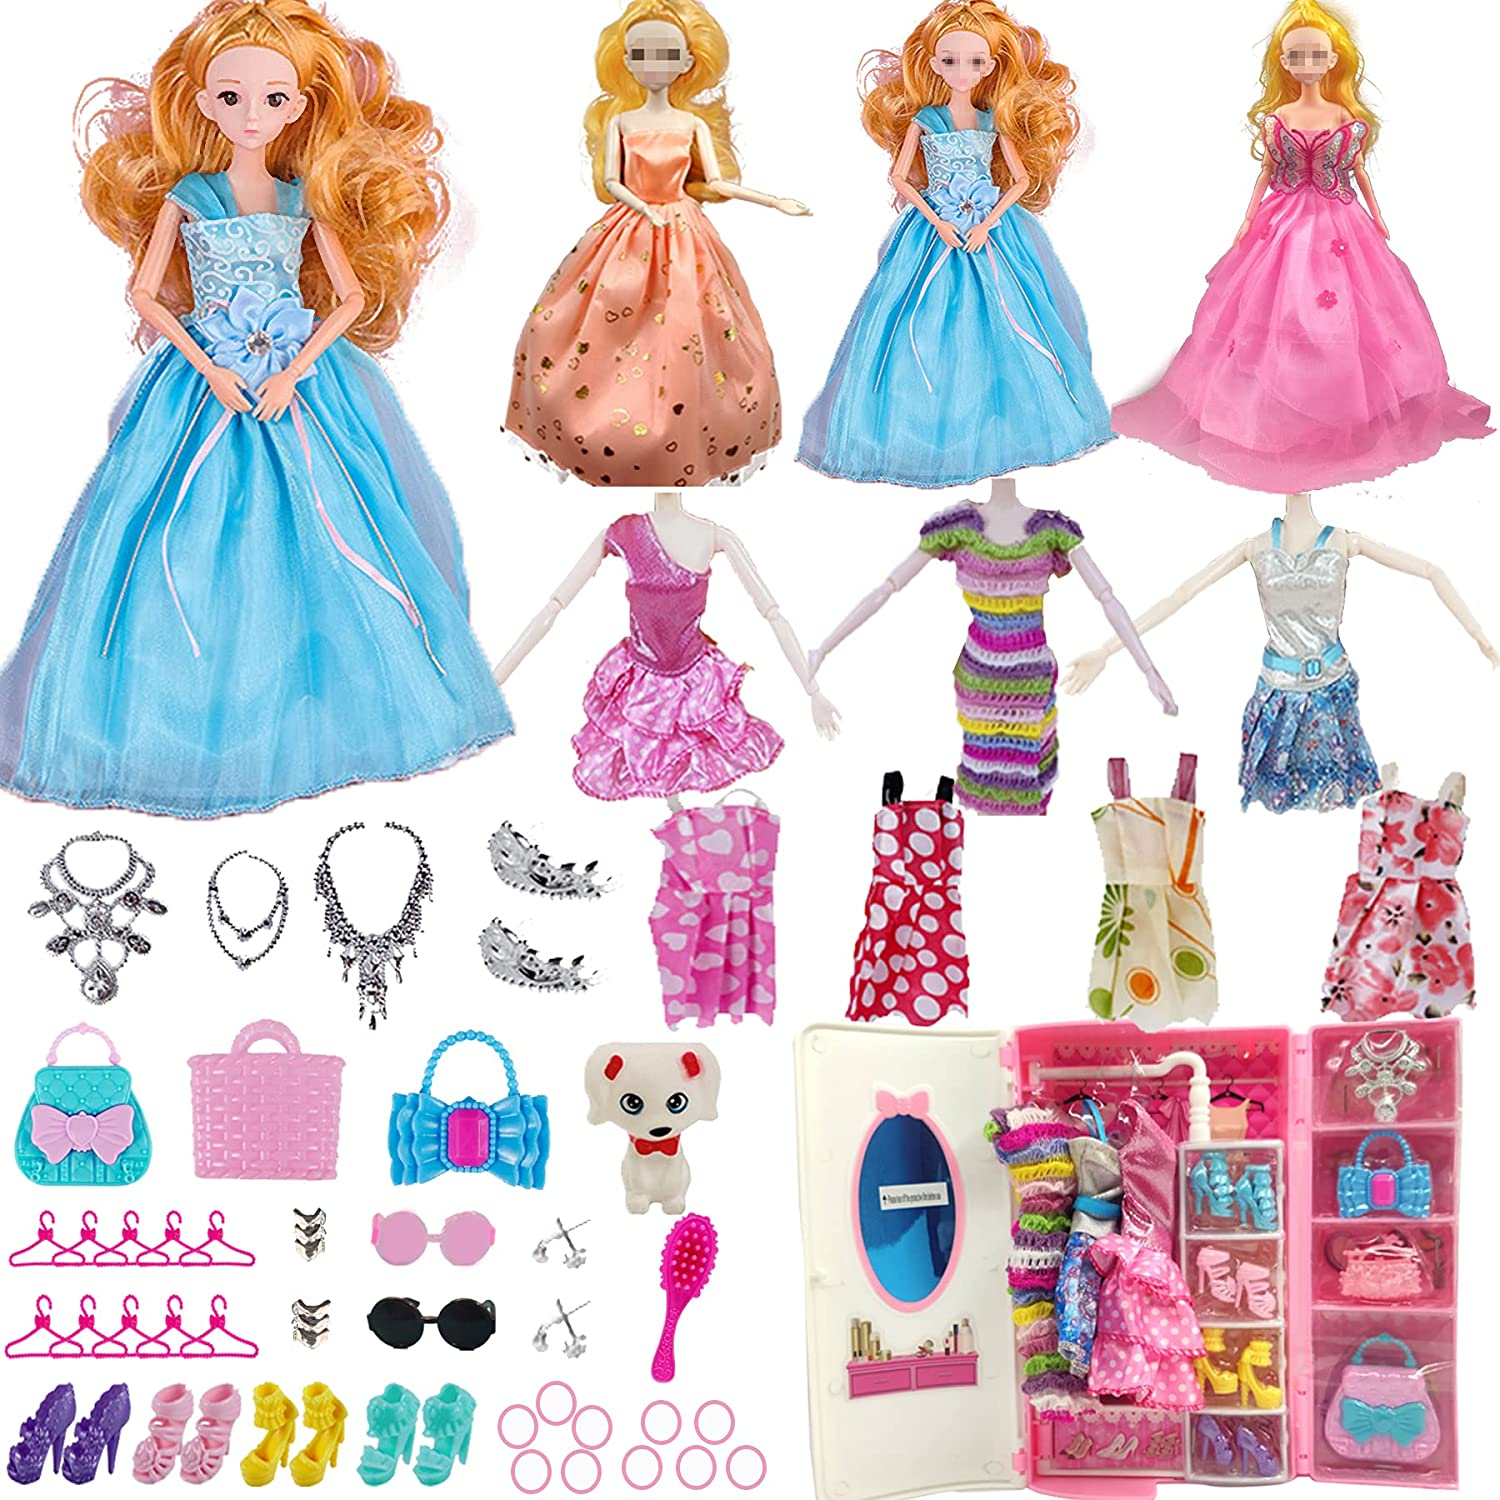 54 Pieces Princess Dolls Accessories Set Gift for Minneapolis Mall ye 3 Large discharge sale 7 4 5 8 6